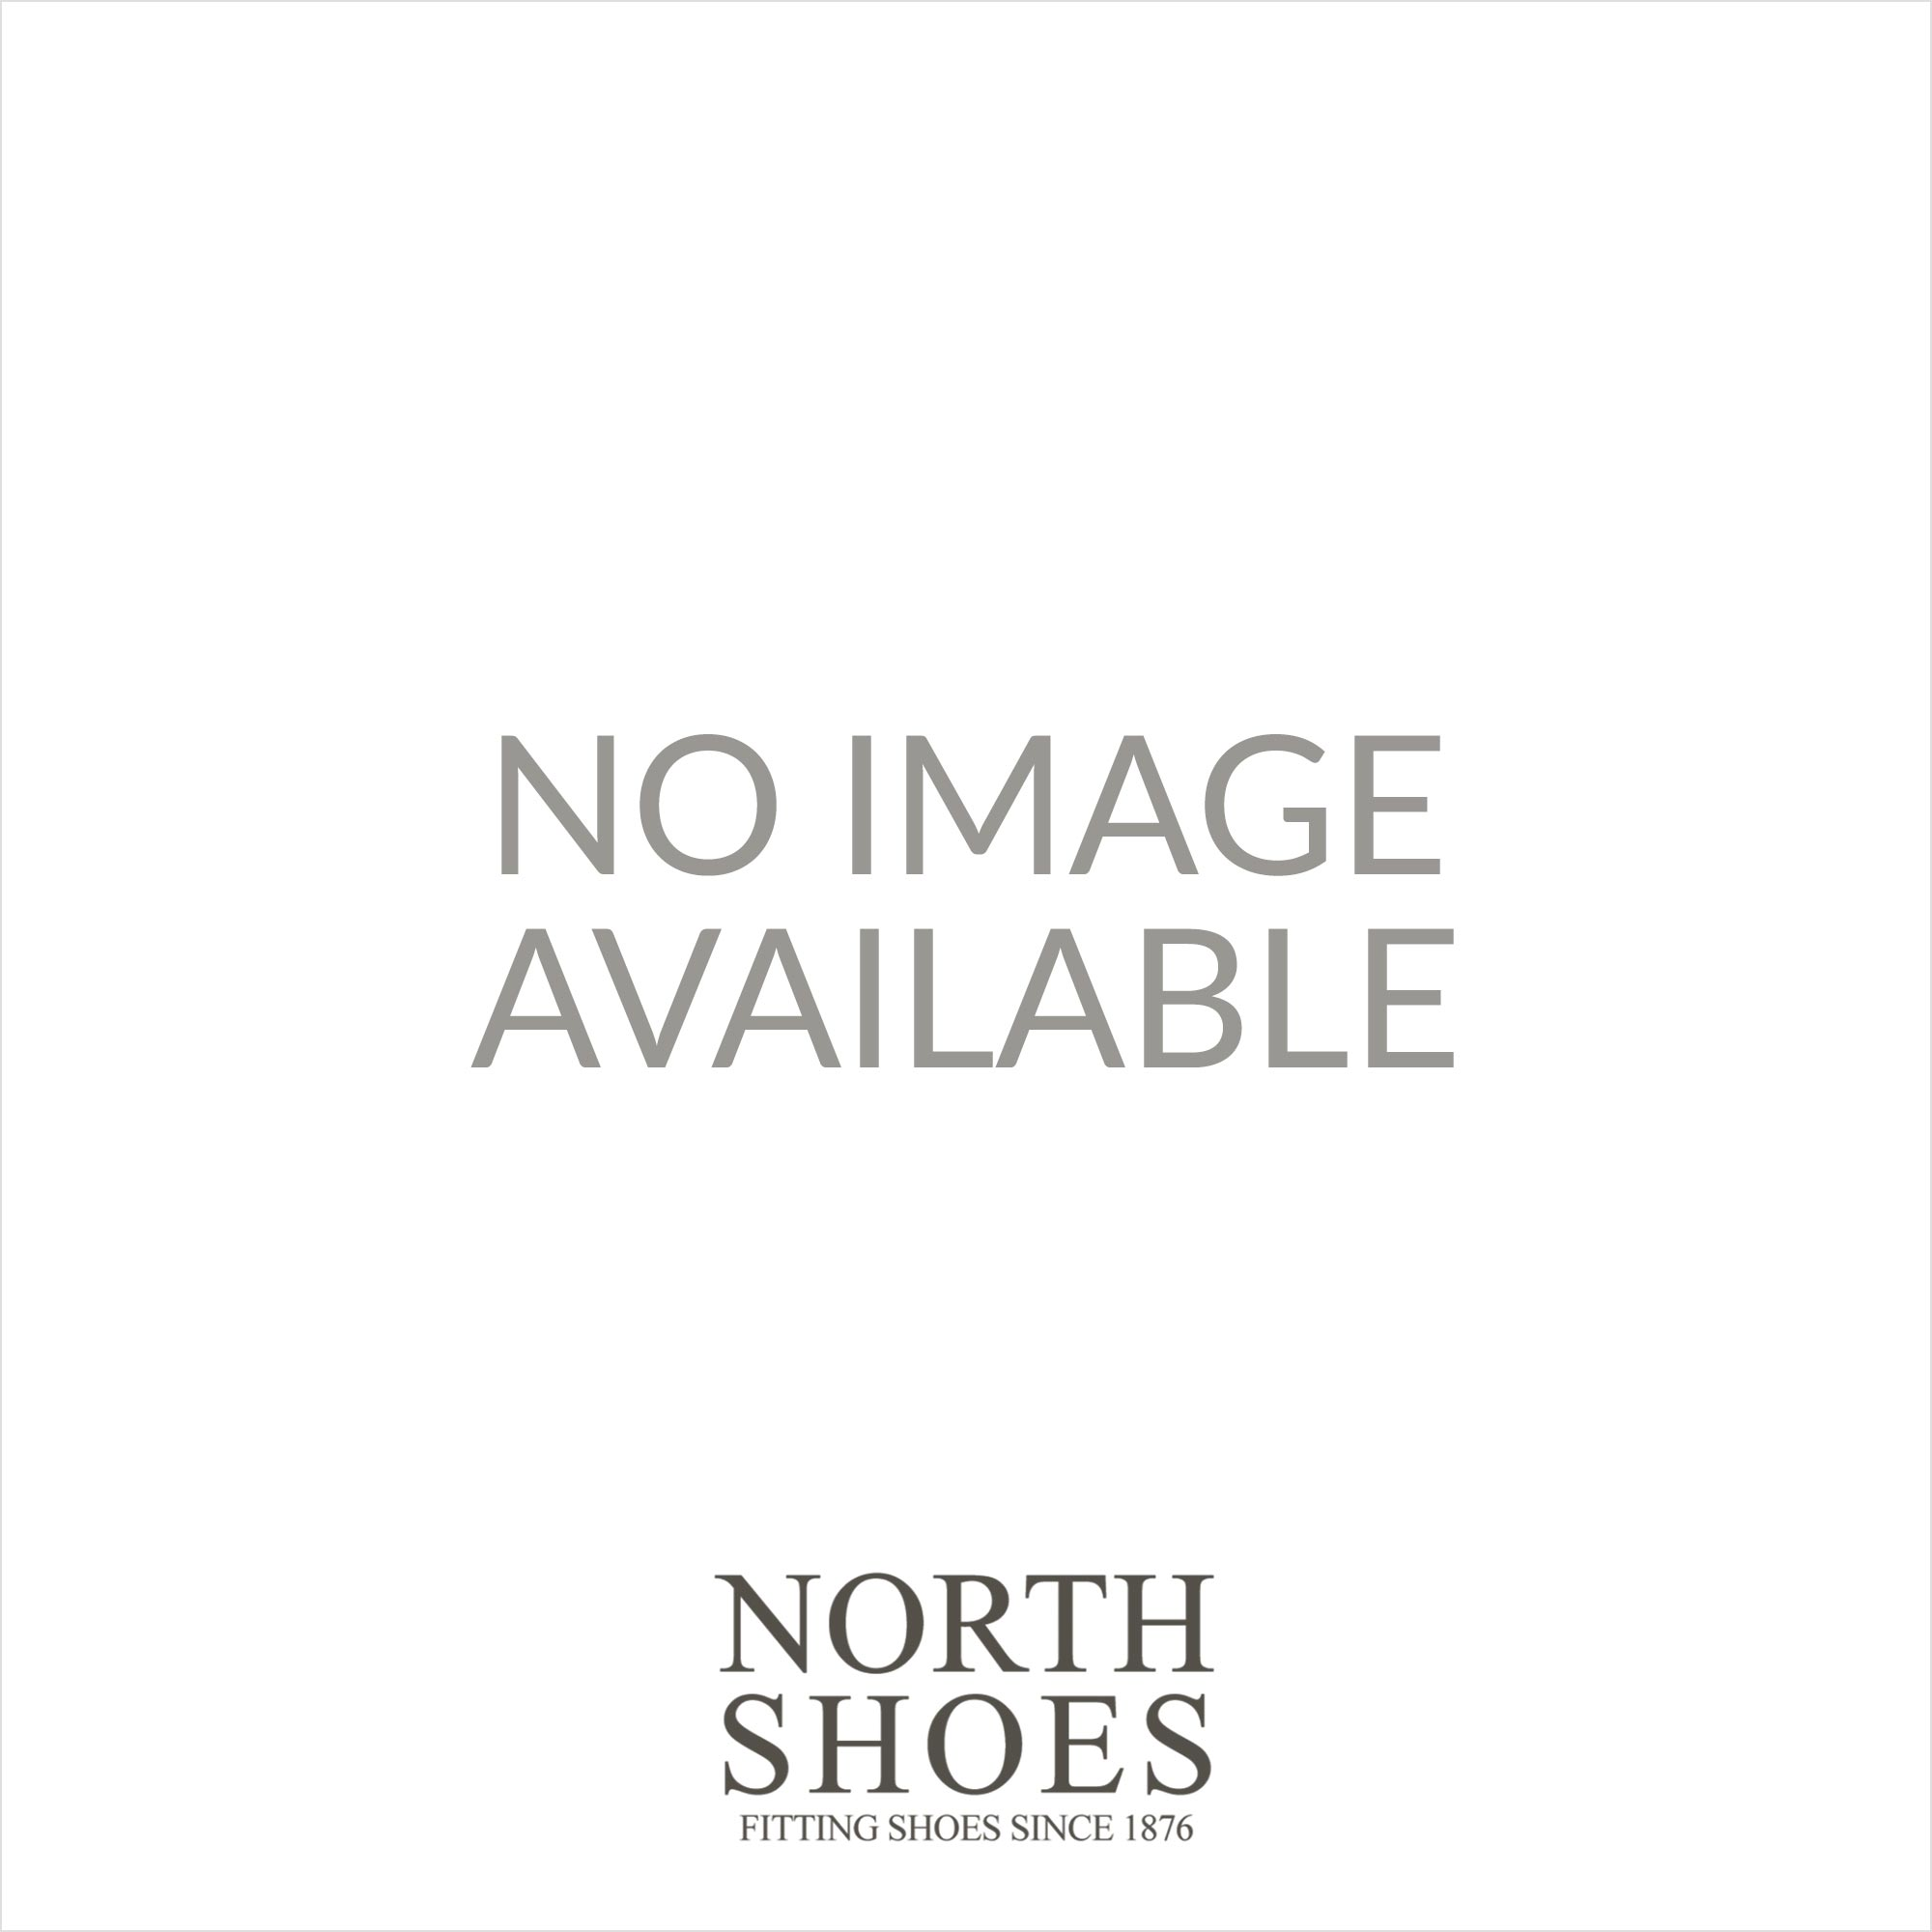 9e40ee1f0 Clarks Festival Glory Black Womens Shoe - Clarks from North Shoes UK